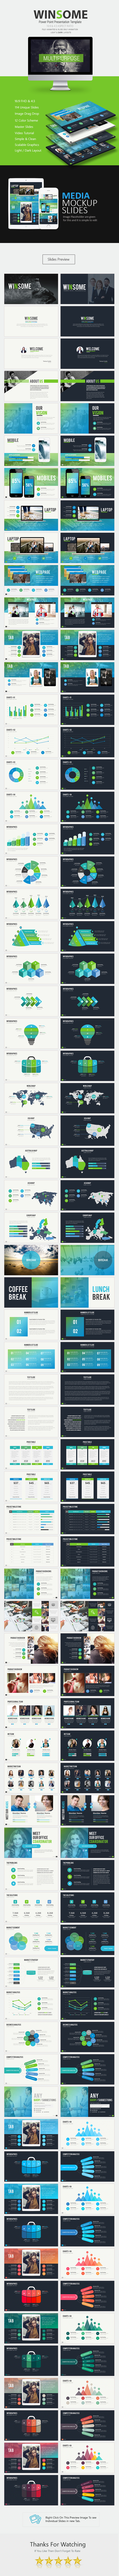 Winsome Power Point Presentation - Business PowerPoint Templates